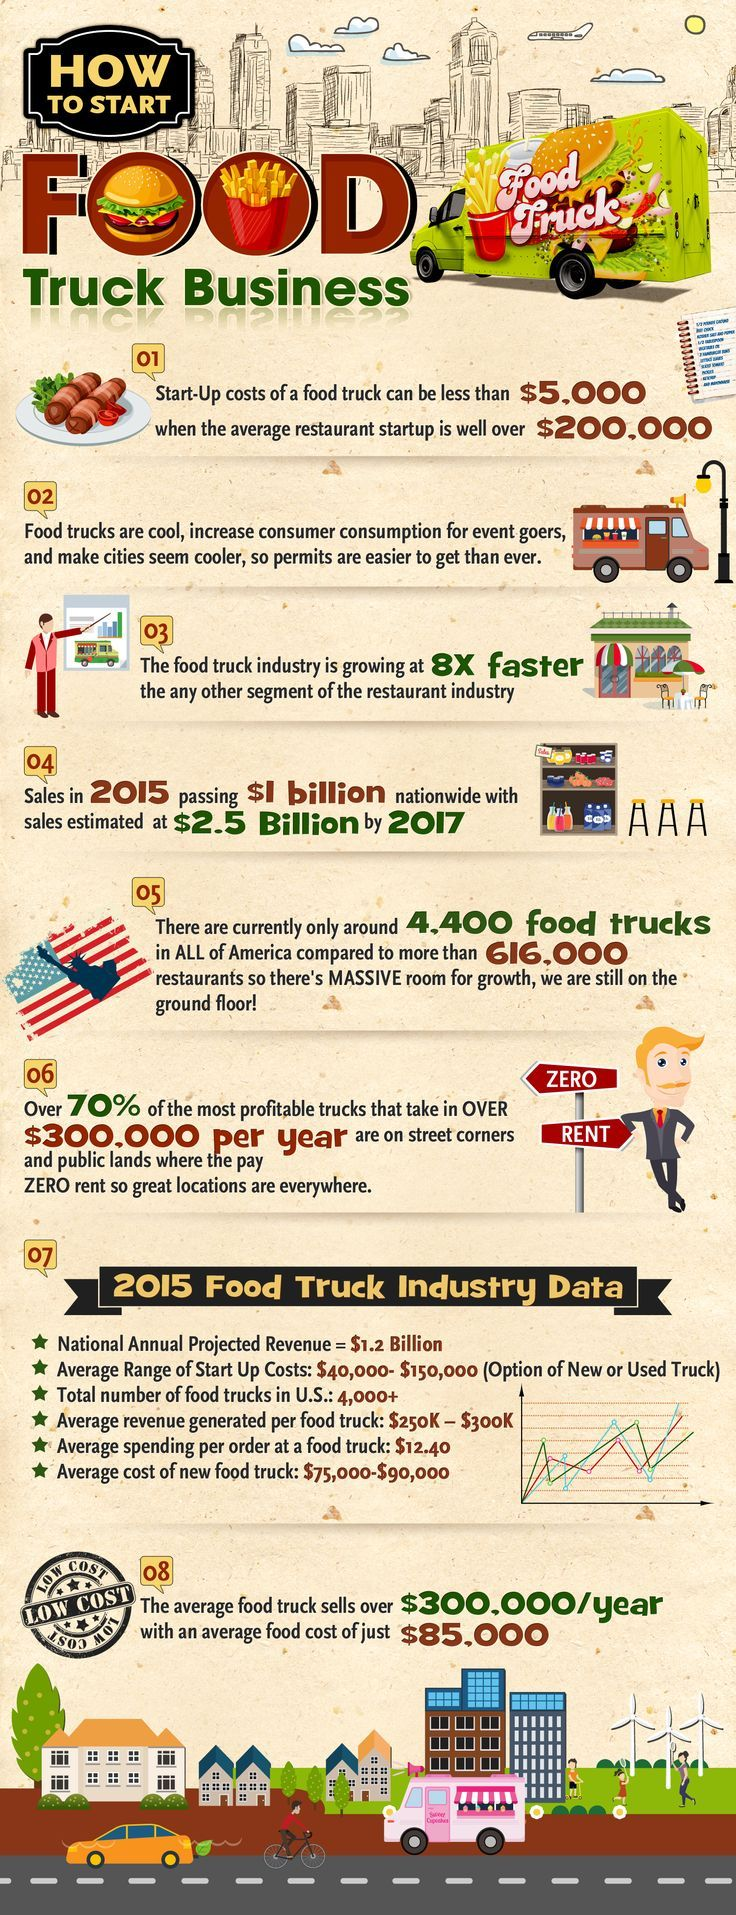 Food Truck sales are expected to be over $2.5 BILLION by 2017!   Read more about the industry at startupjungle.com